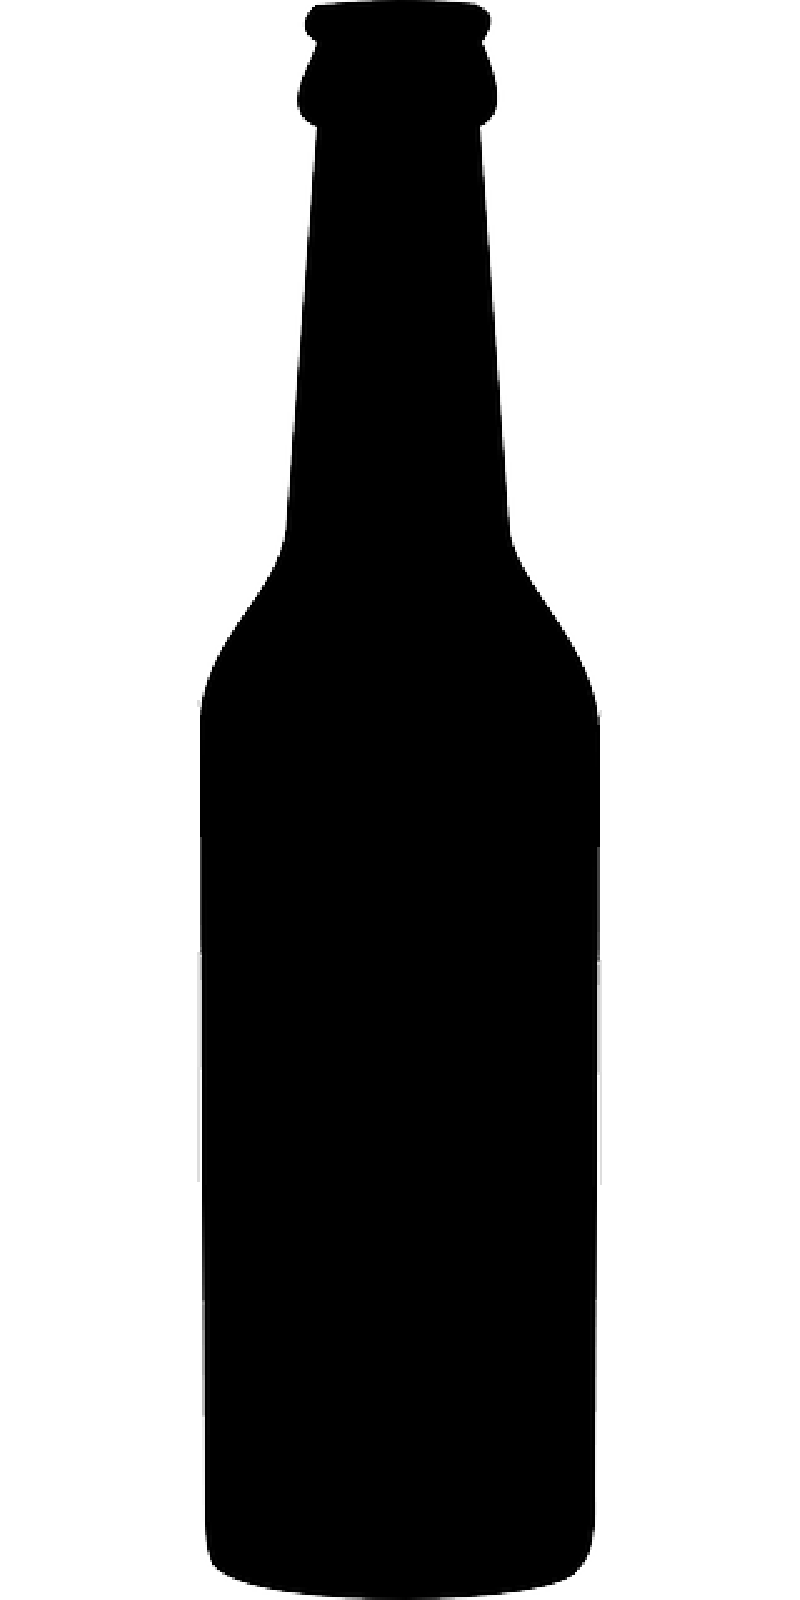 beer bottle silhouette free vector graphic bottle beer silhouette black silhouette beer bottle